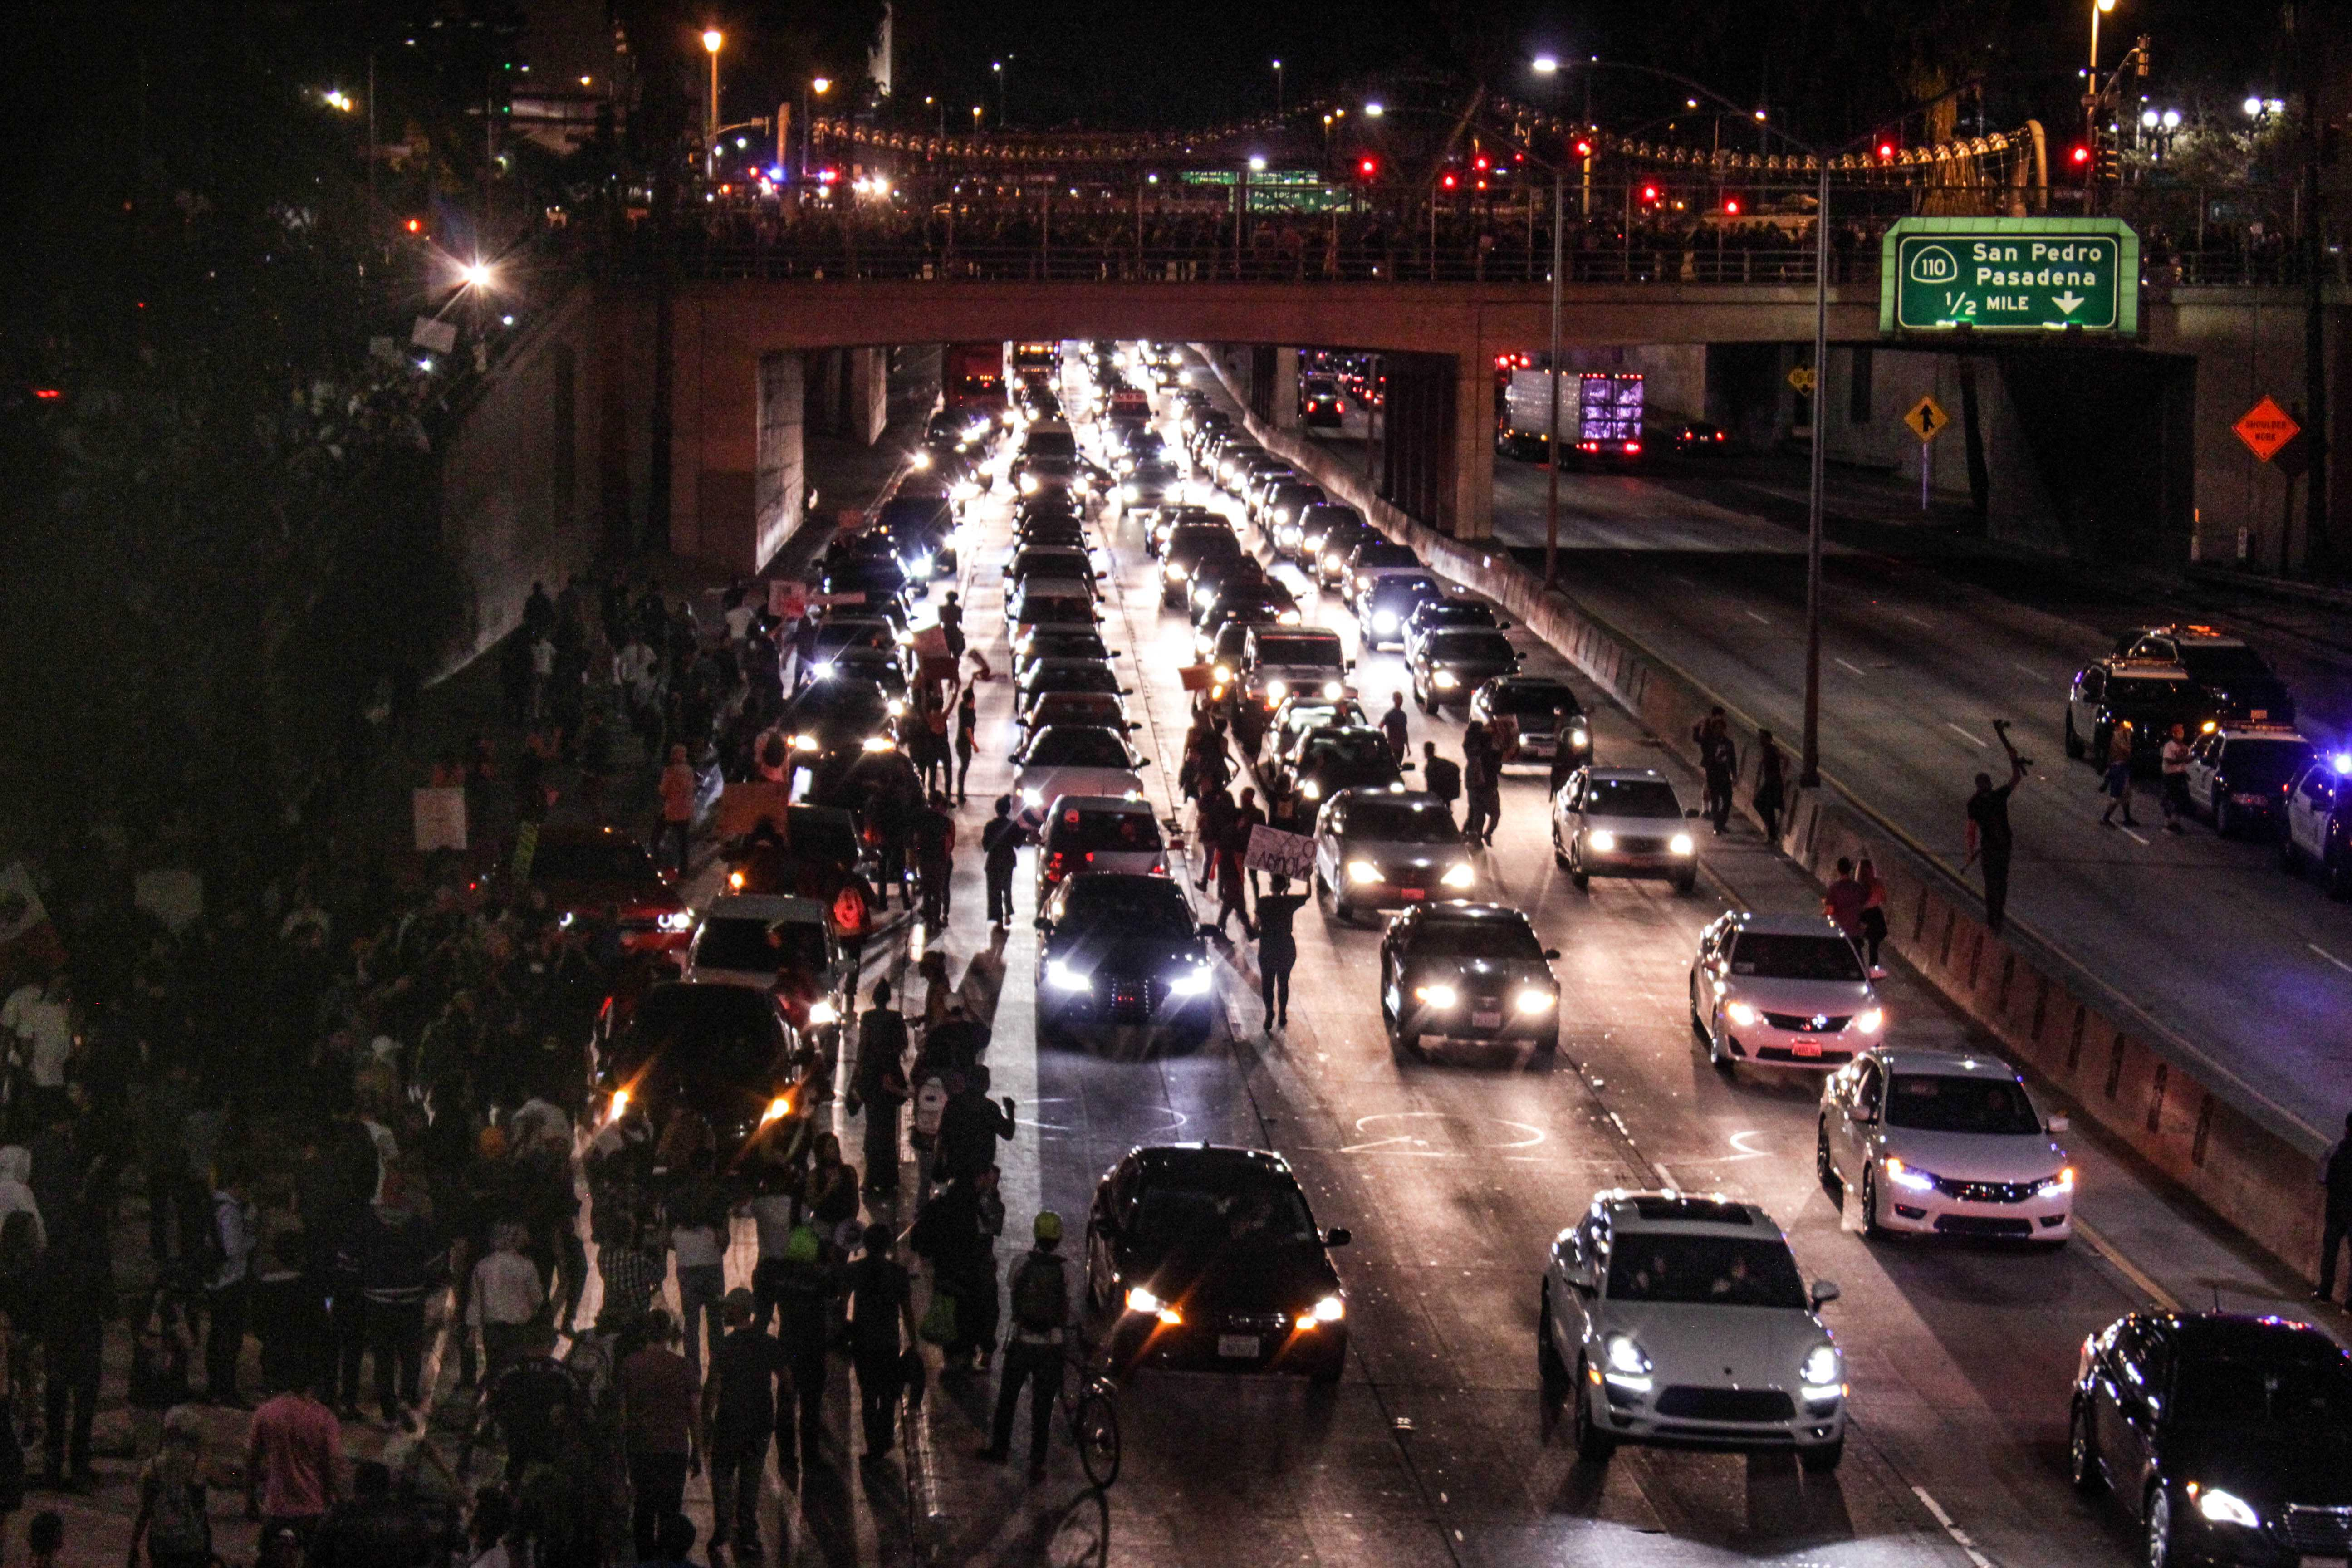 Picture shows protesters blocking several lanes of the freeway